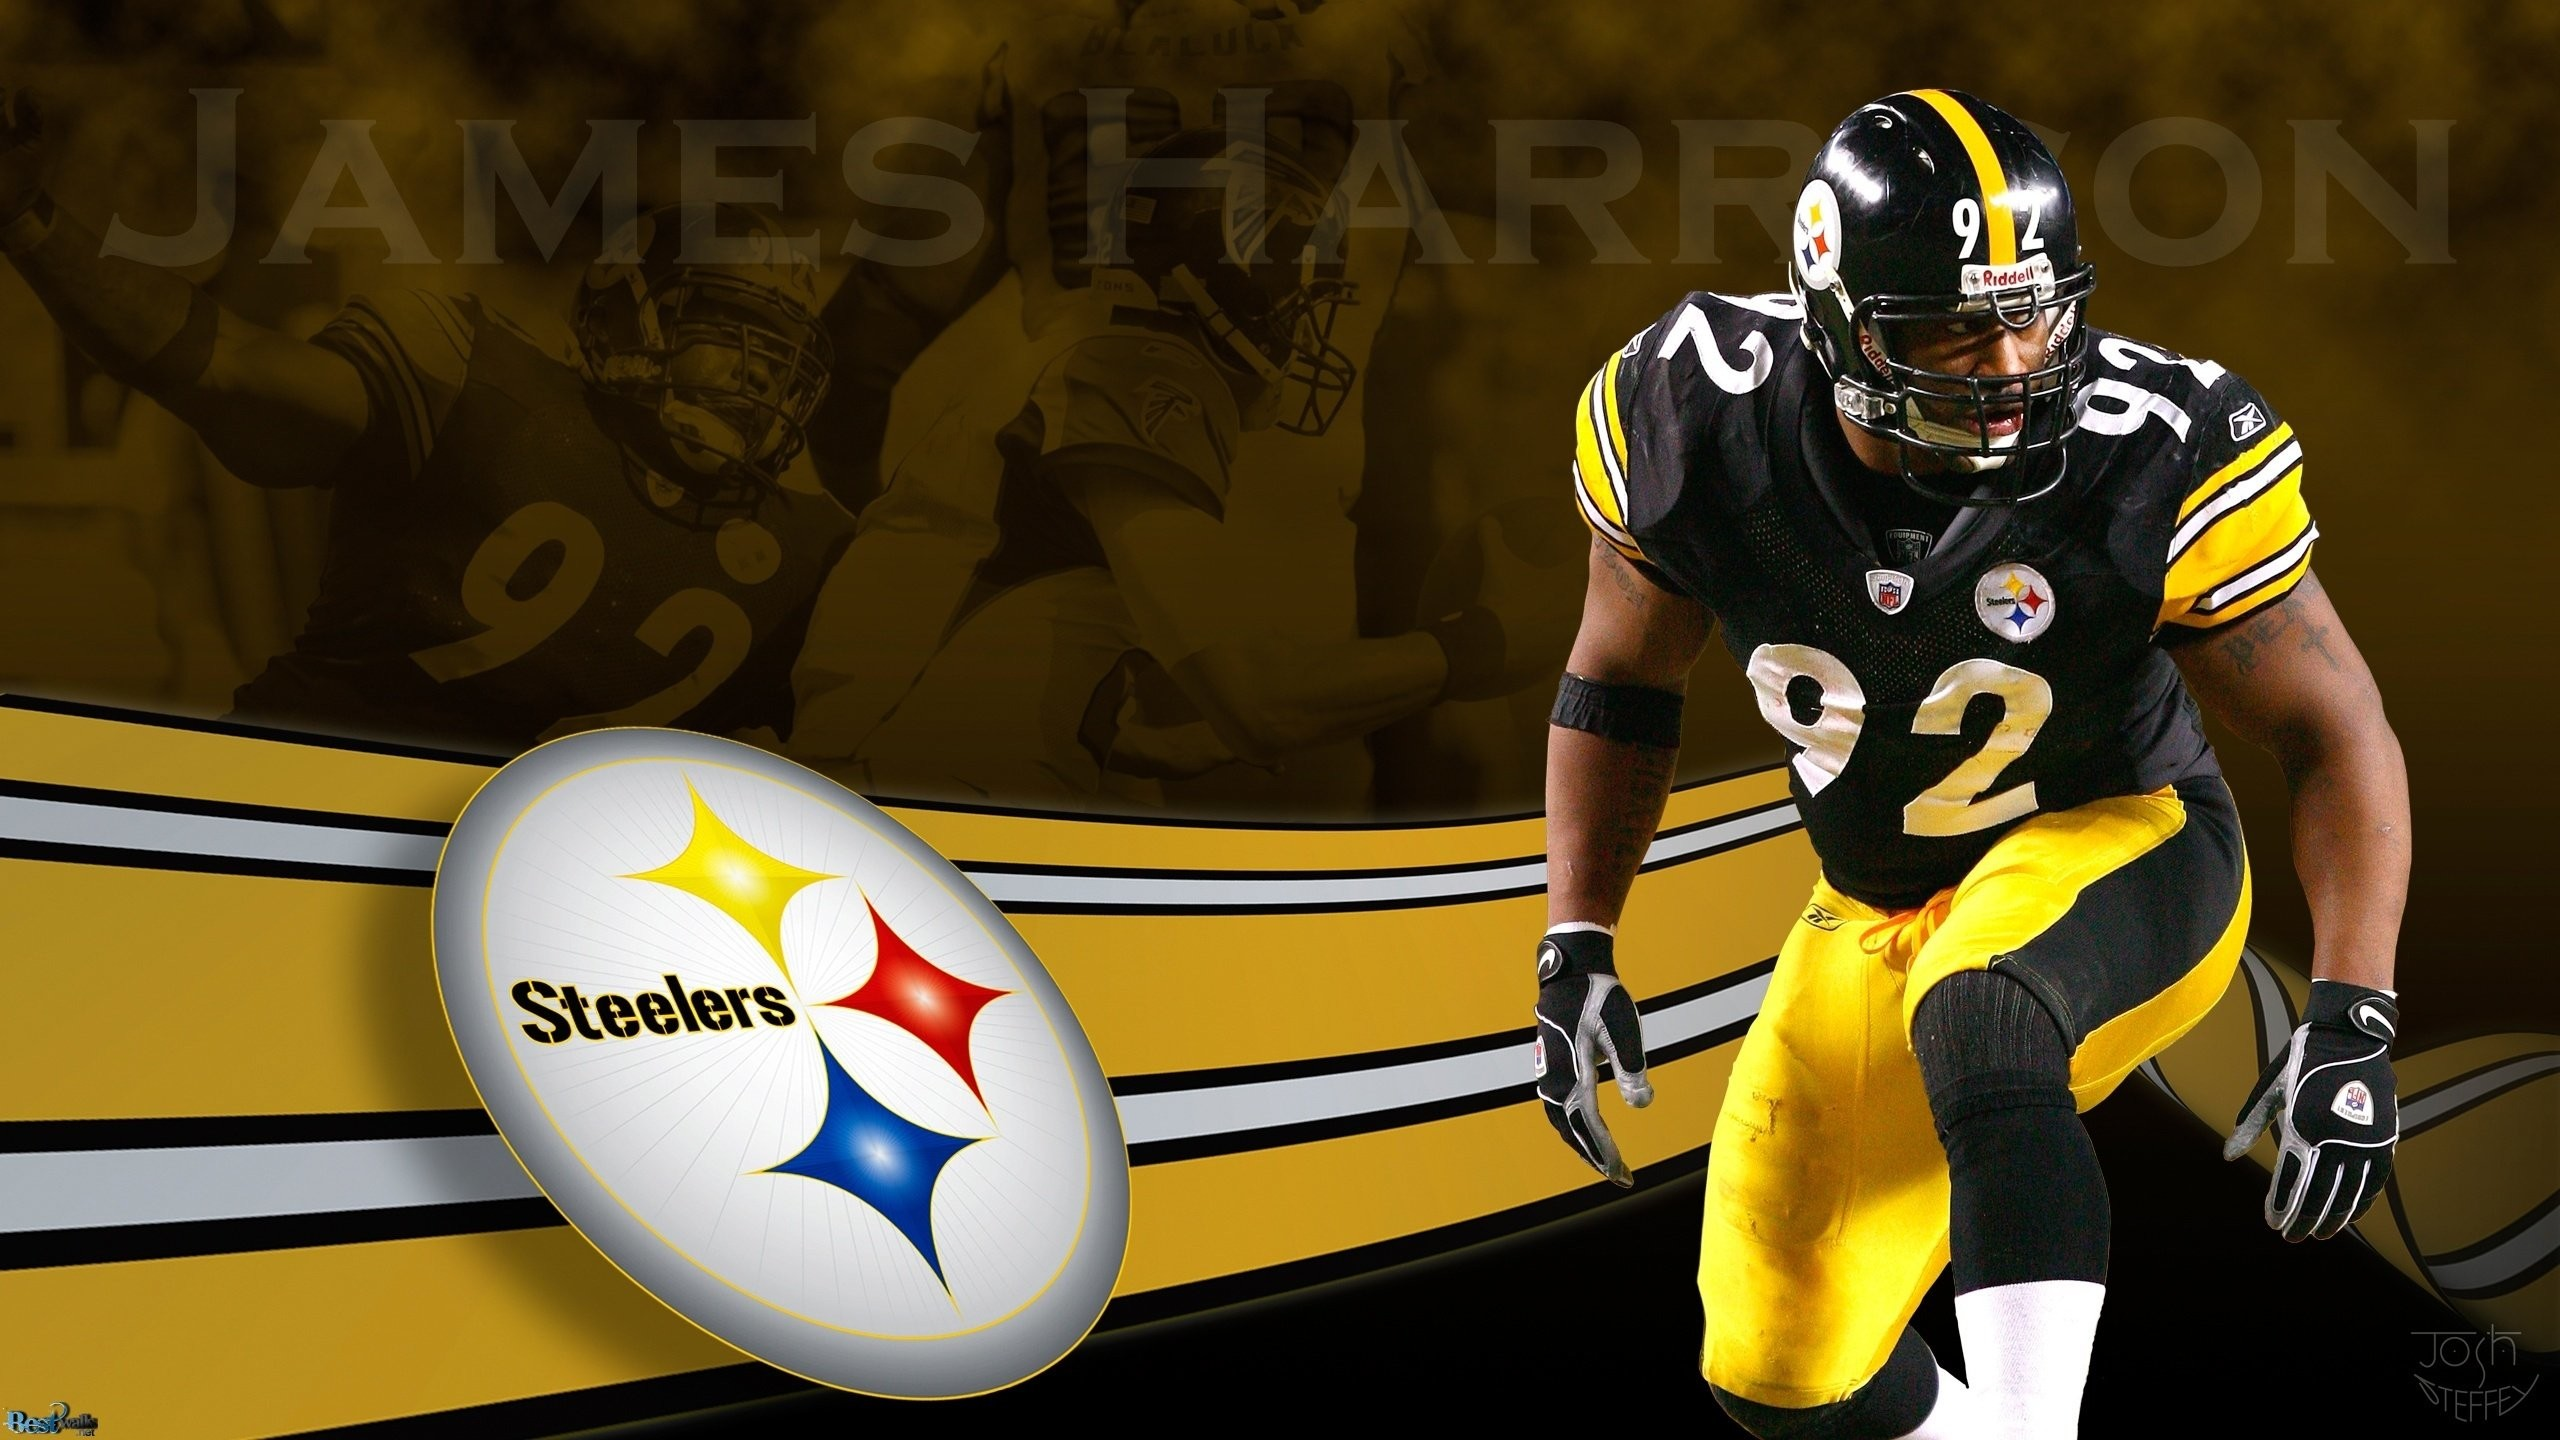 Download James Harrison Live Wallpaper for Android – Appszoom